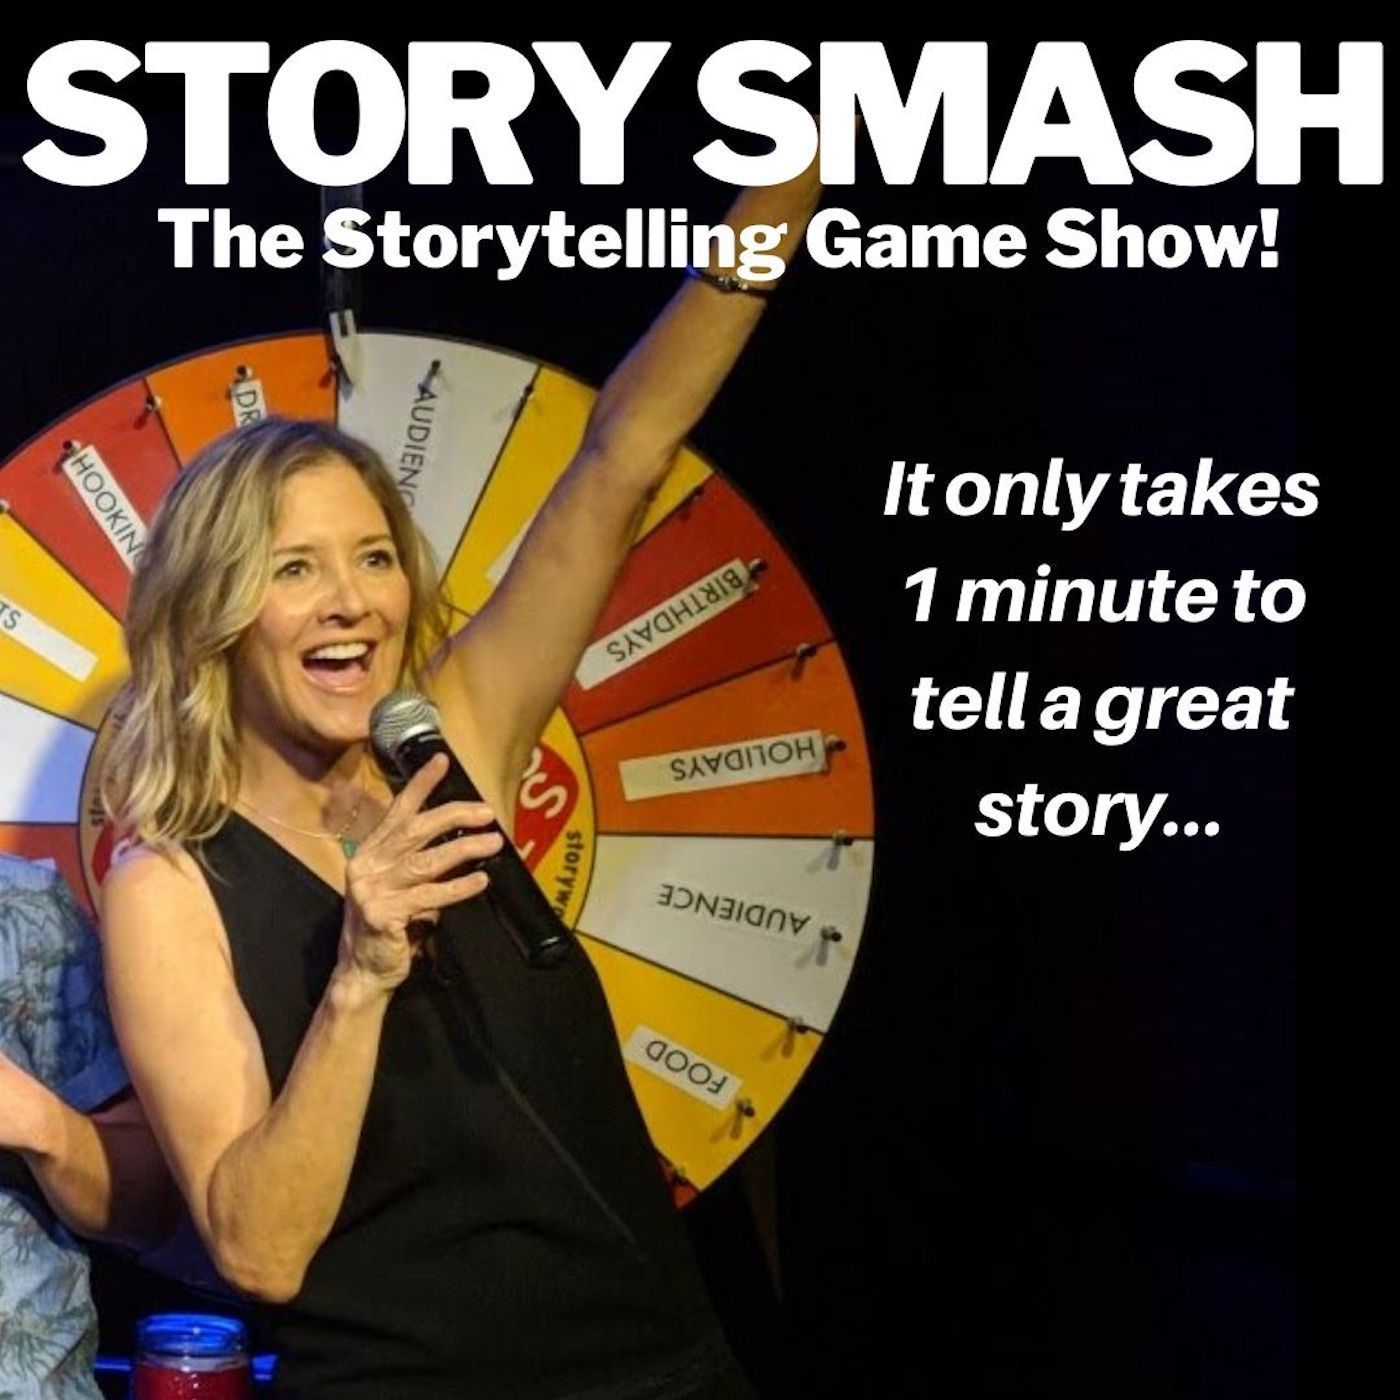 604 - Story Smash the Storytelling Game Show LIVE at The Hollywood Improv!